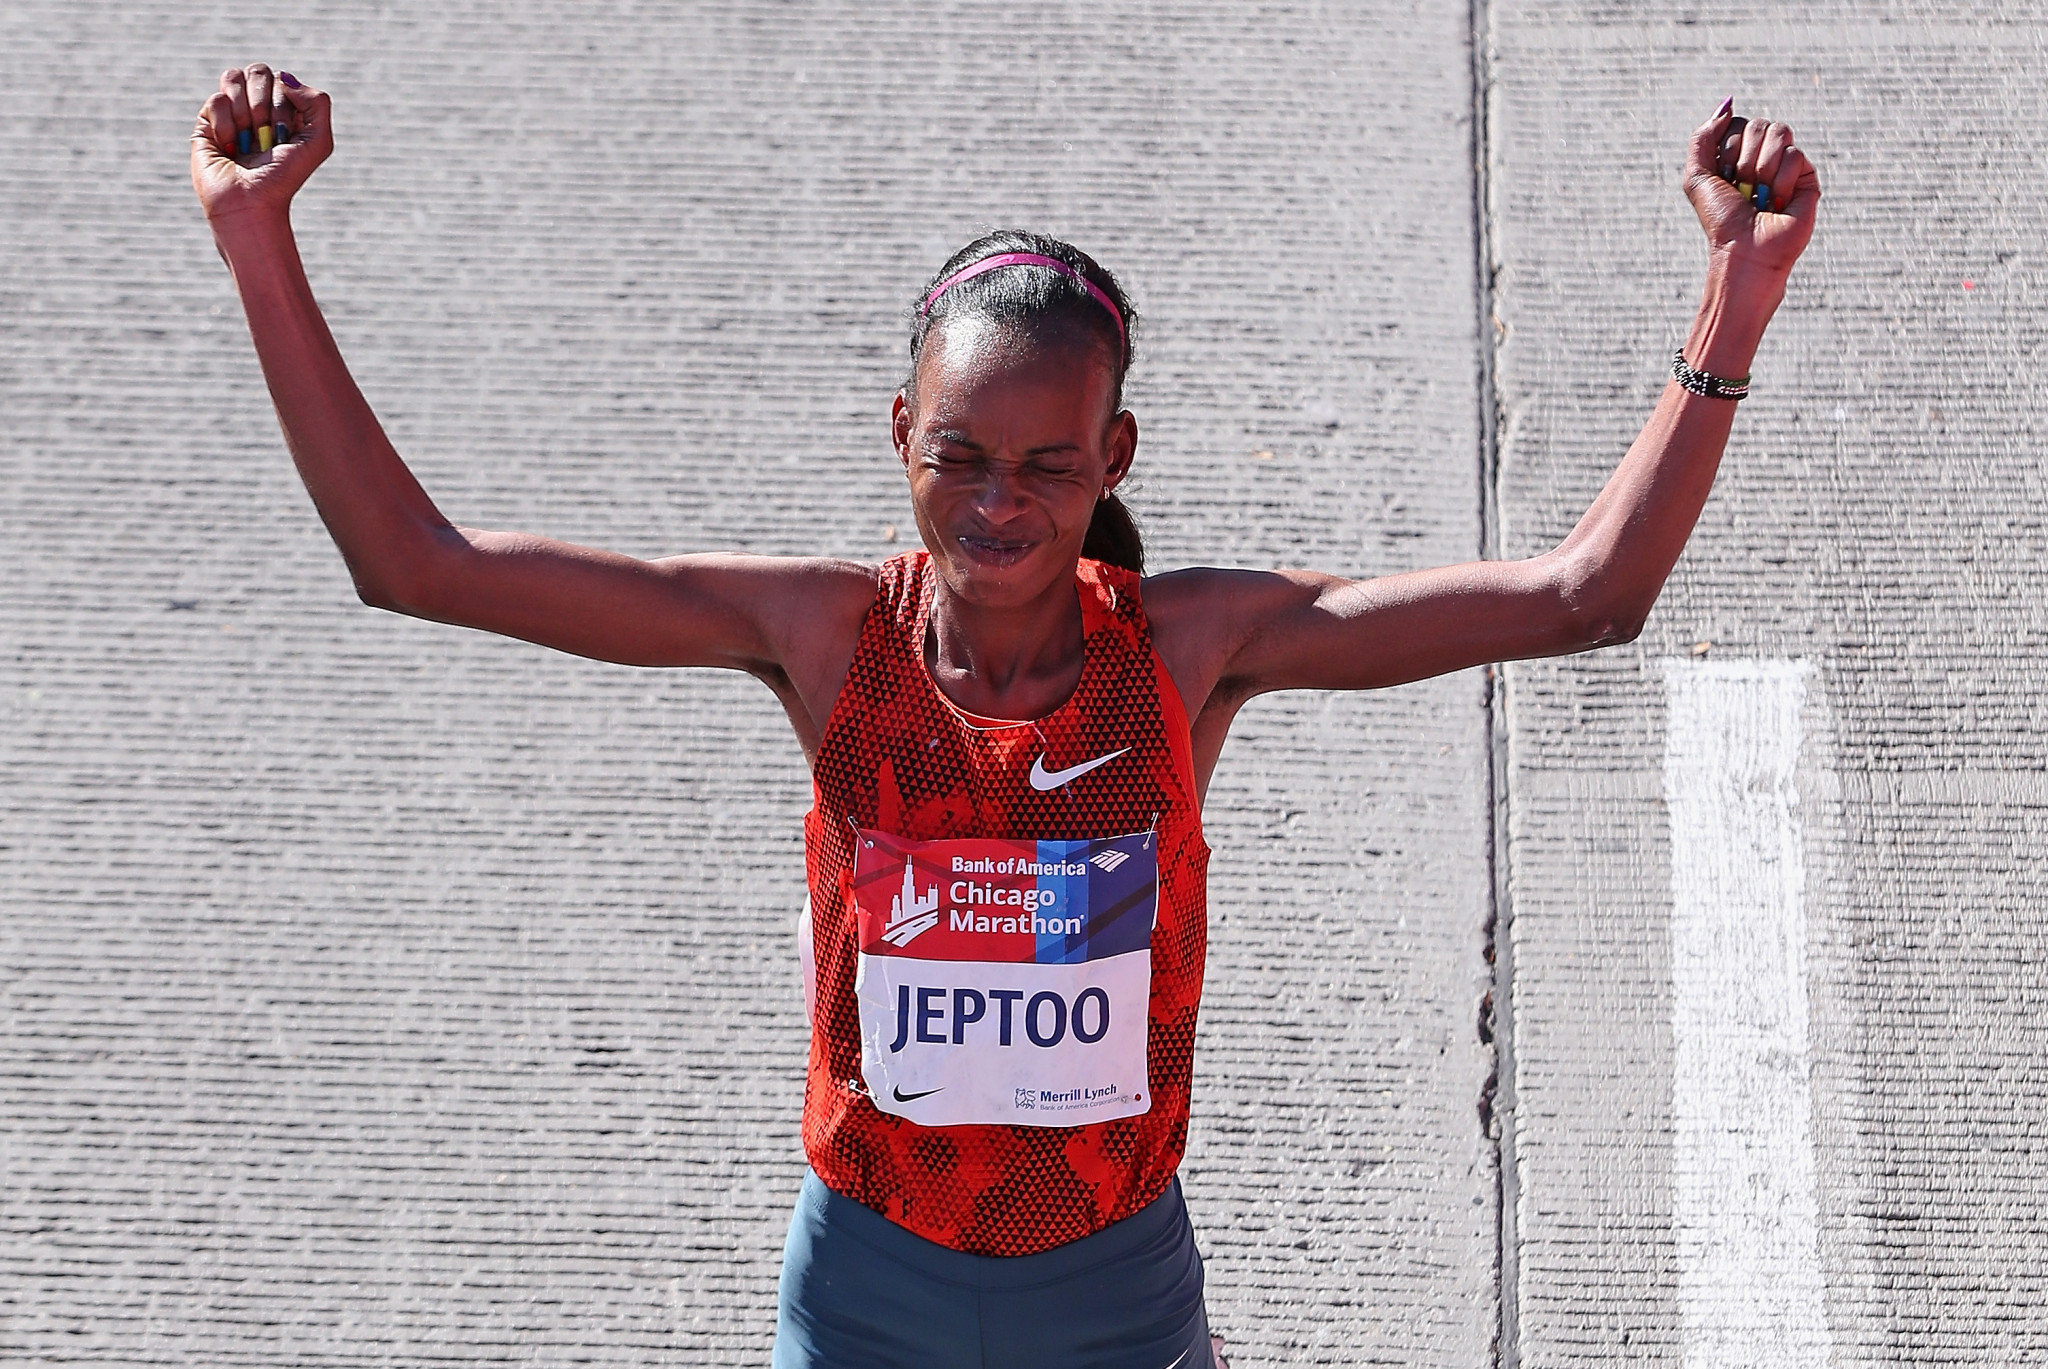 Rita Jeptoo is among the Kenyan athletes serving doping bans ©Getty Images